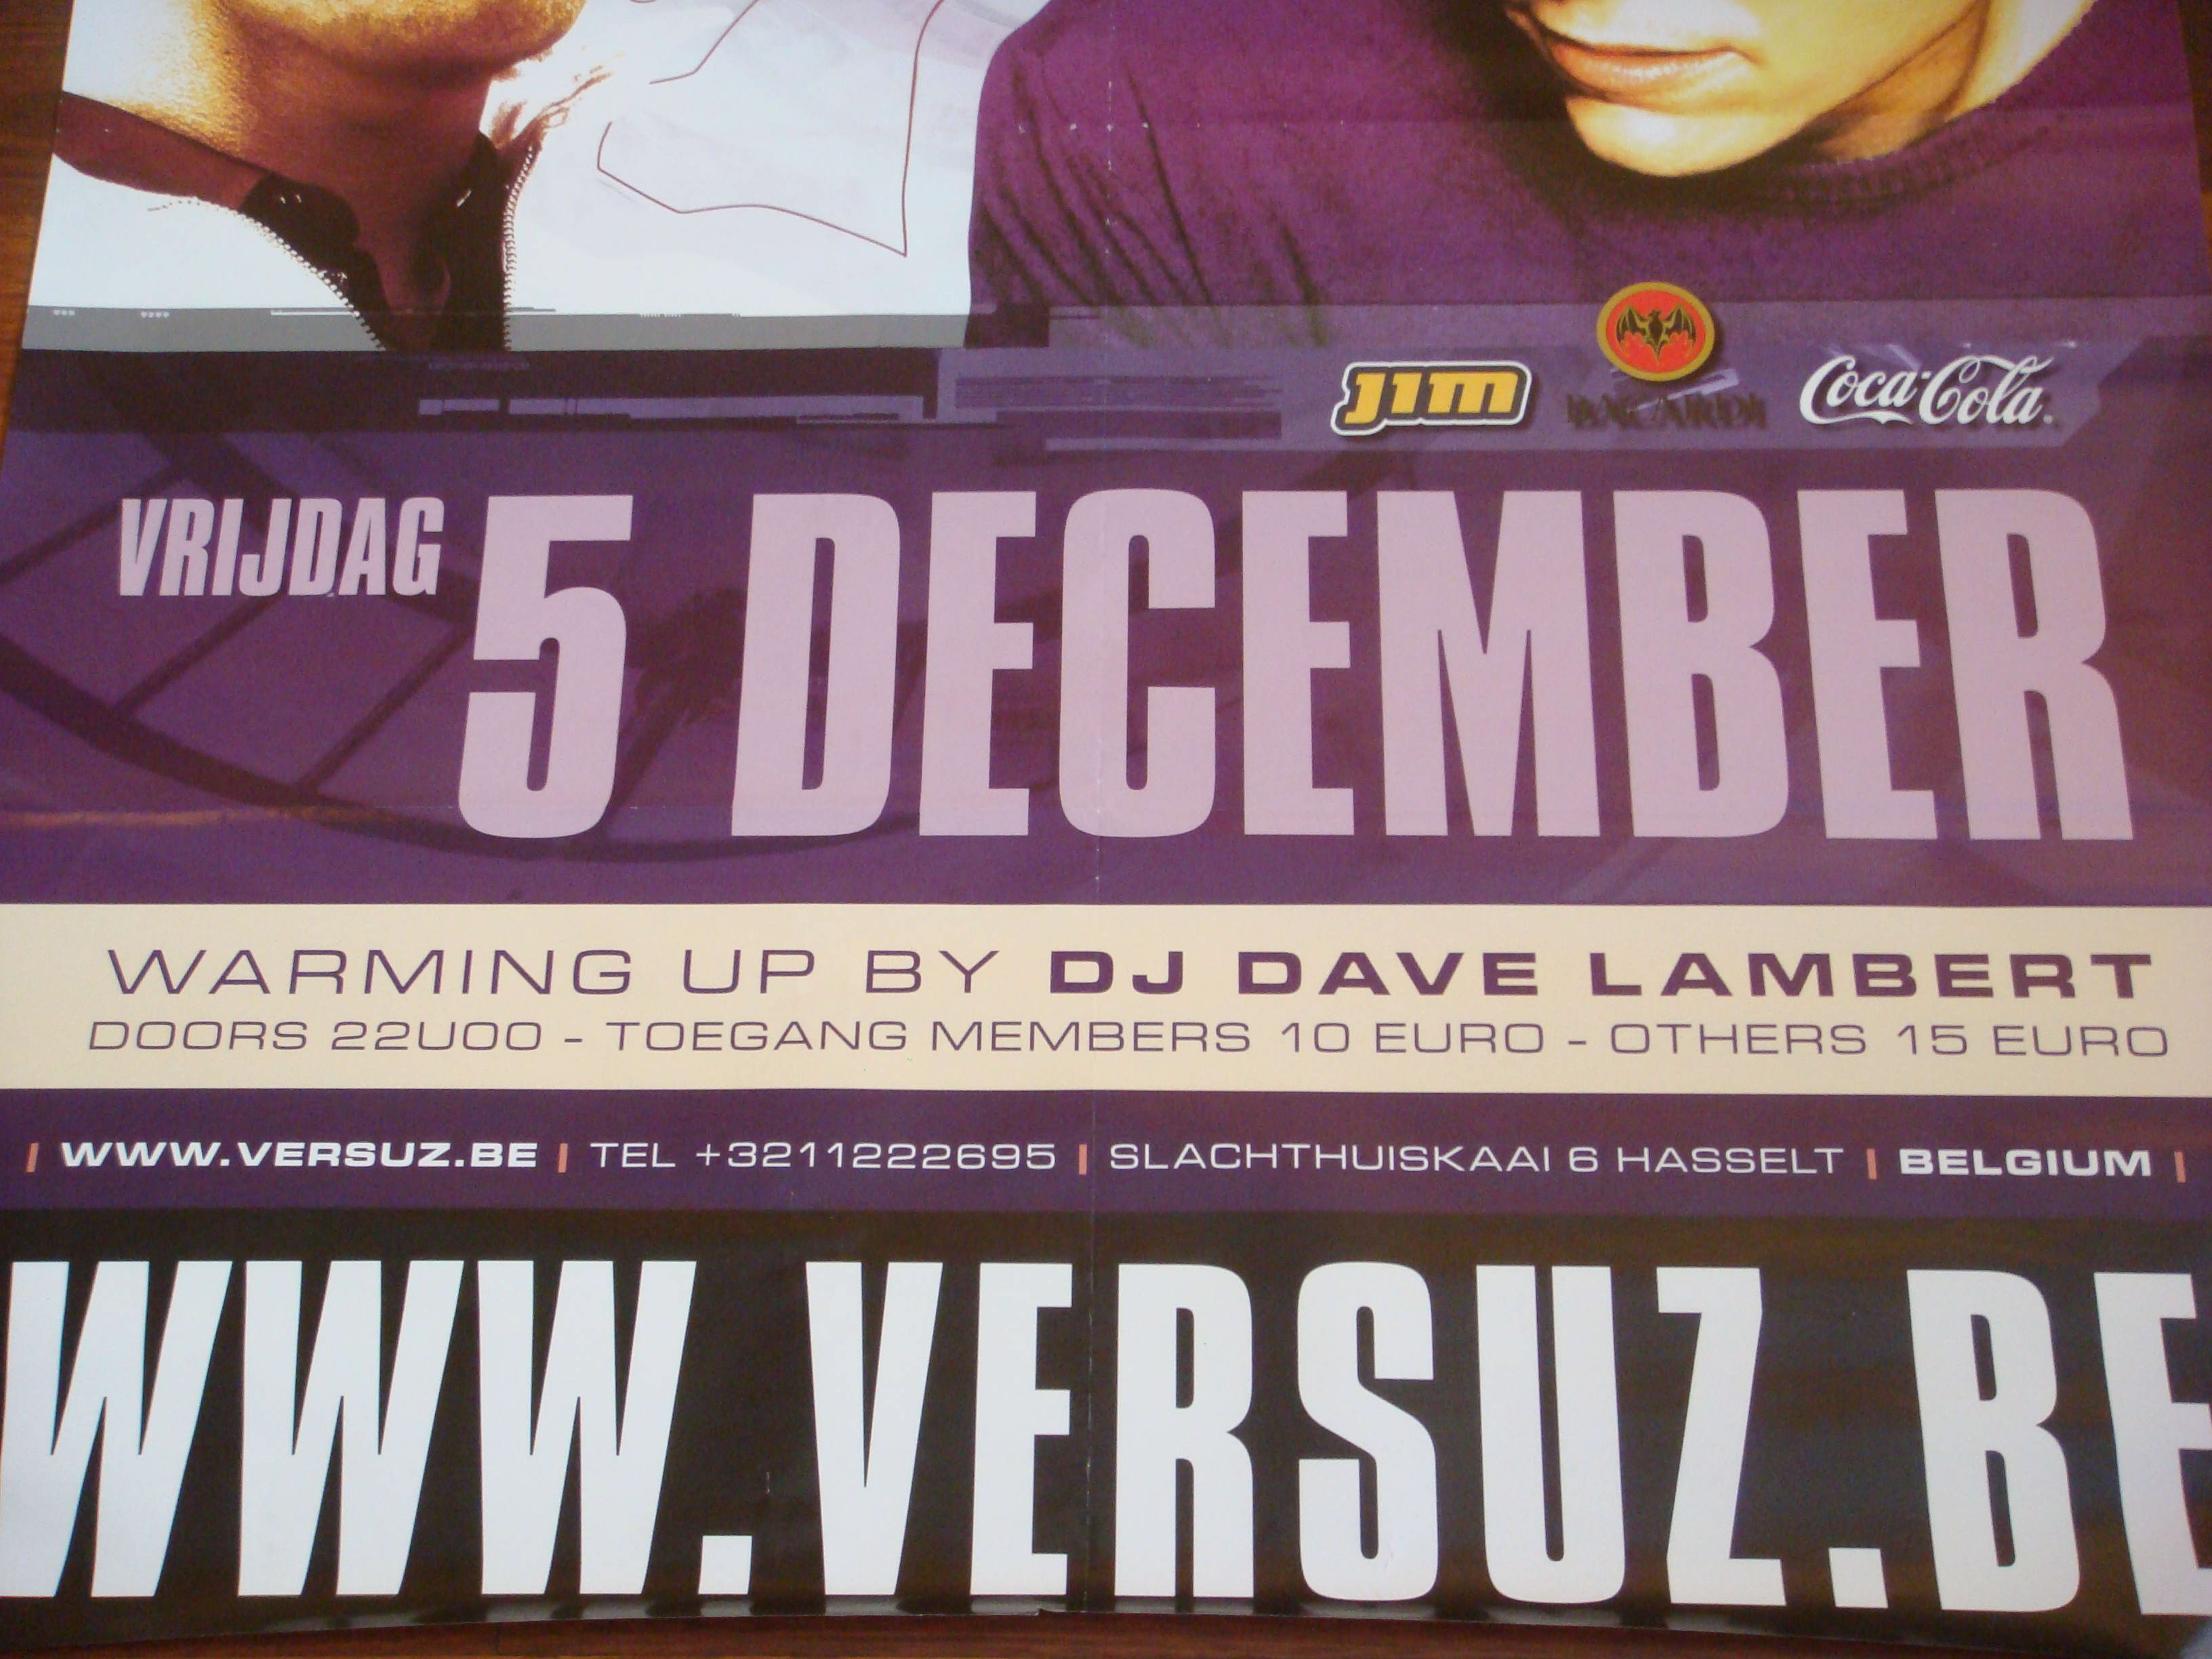 Tiesto at Versuz (Belgium) 5 december 2003 Poster